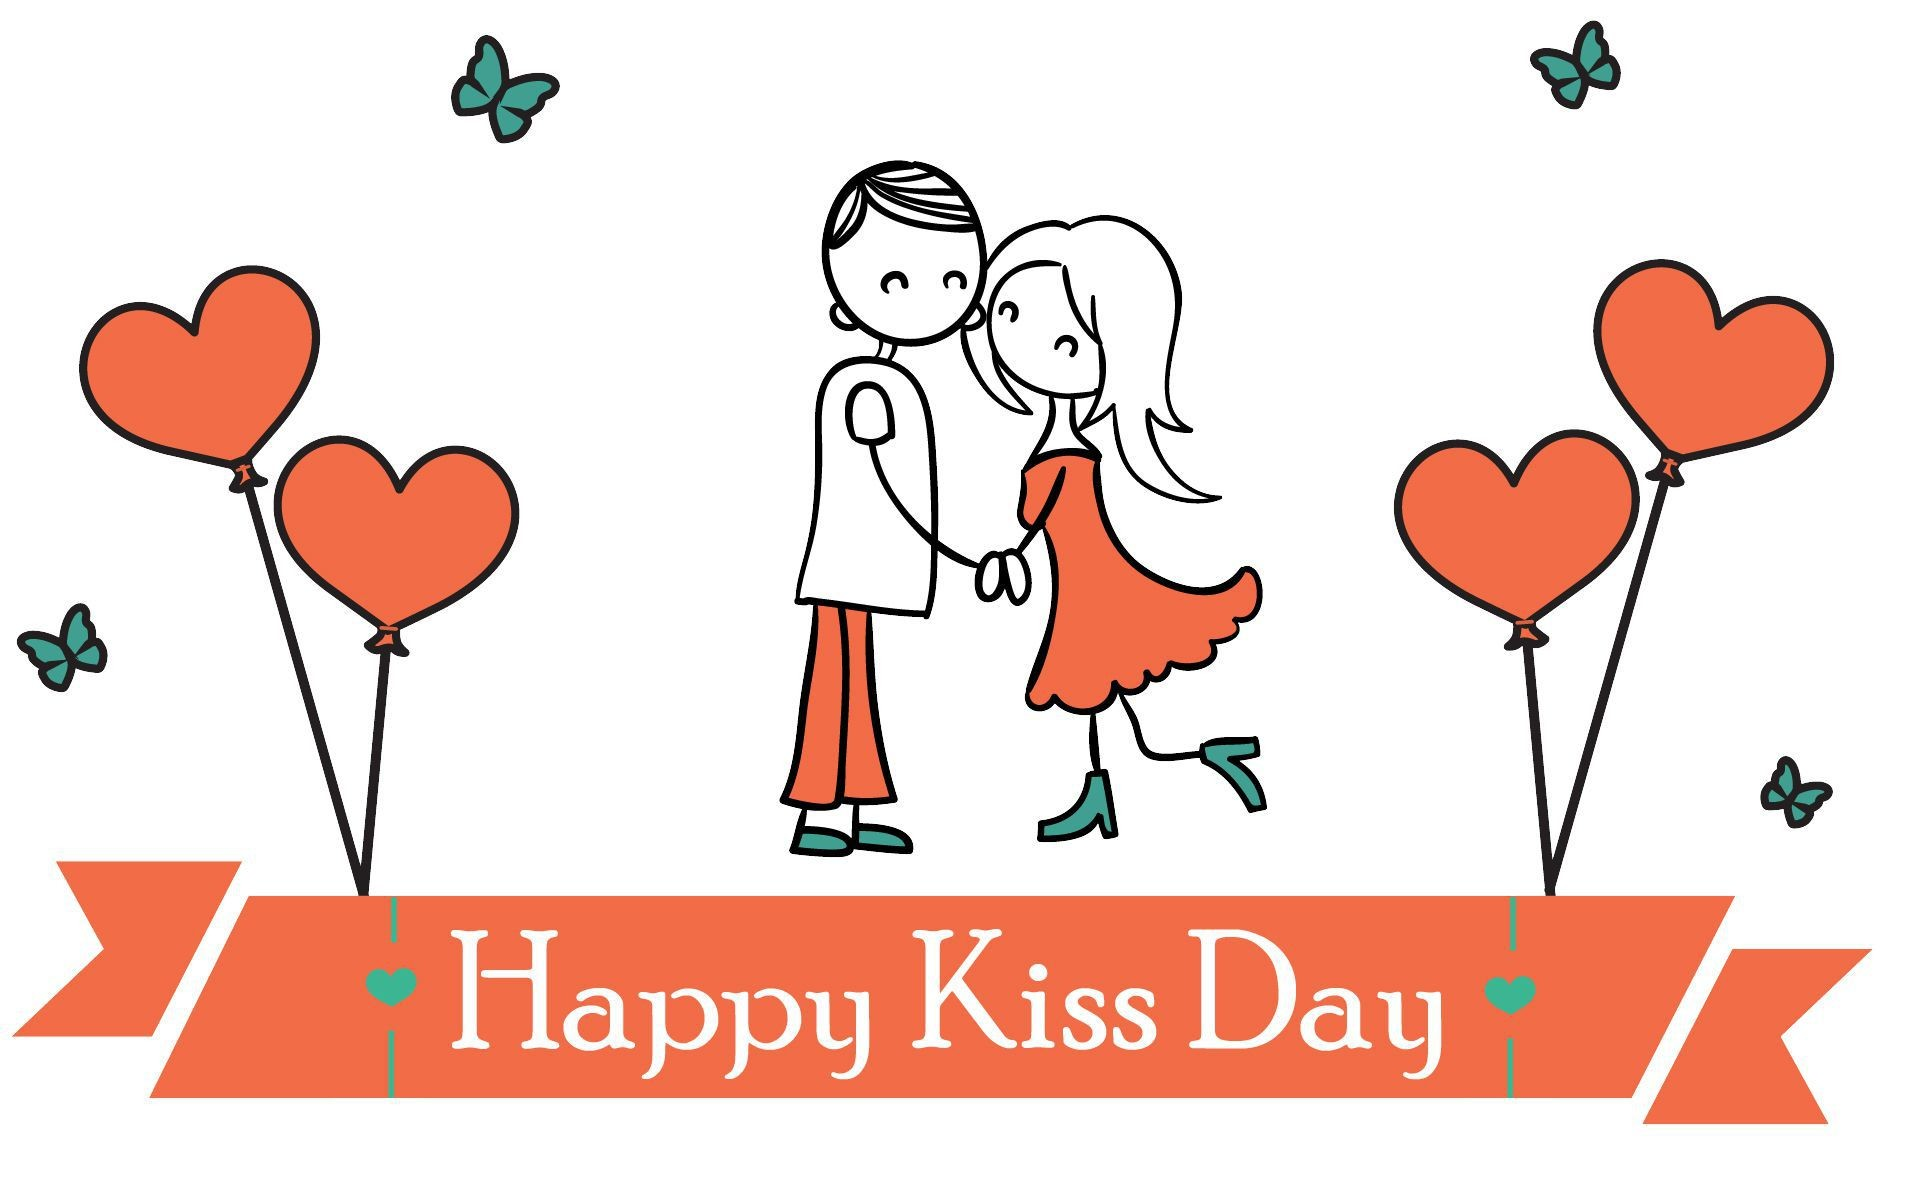 1920x1200 Happy kiss day images 2017